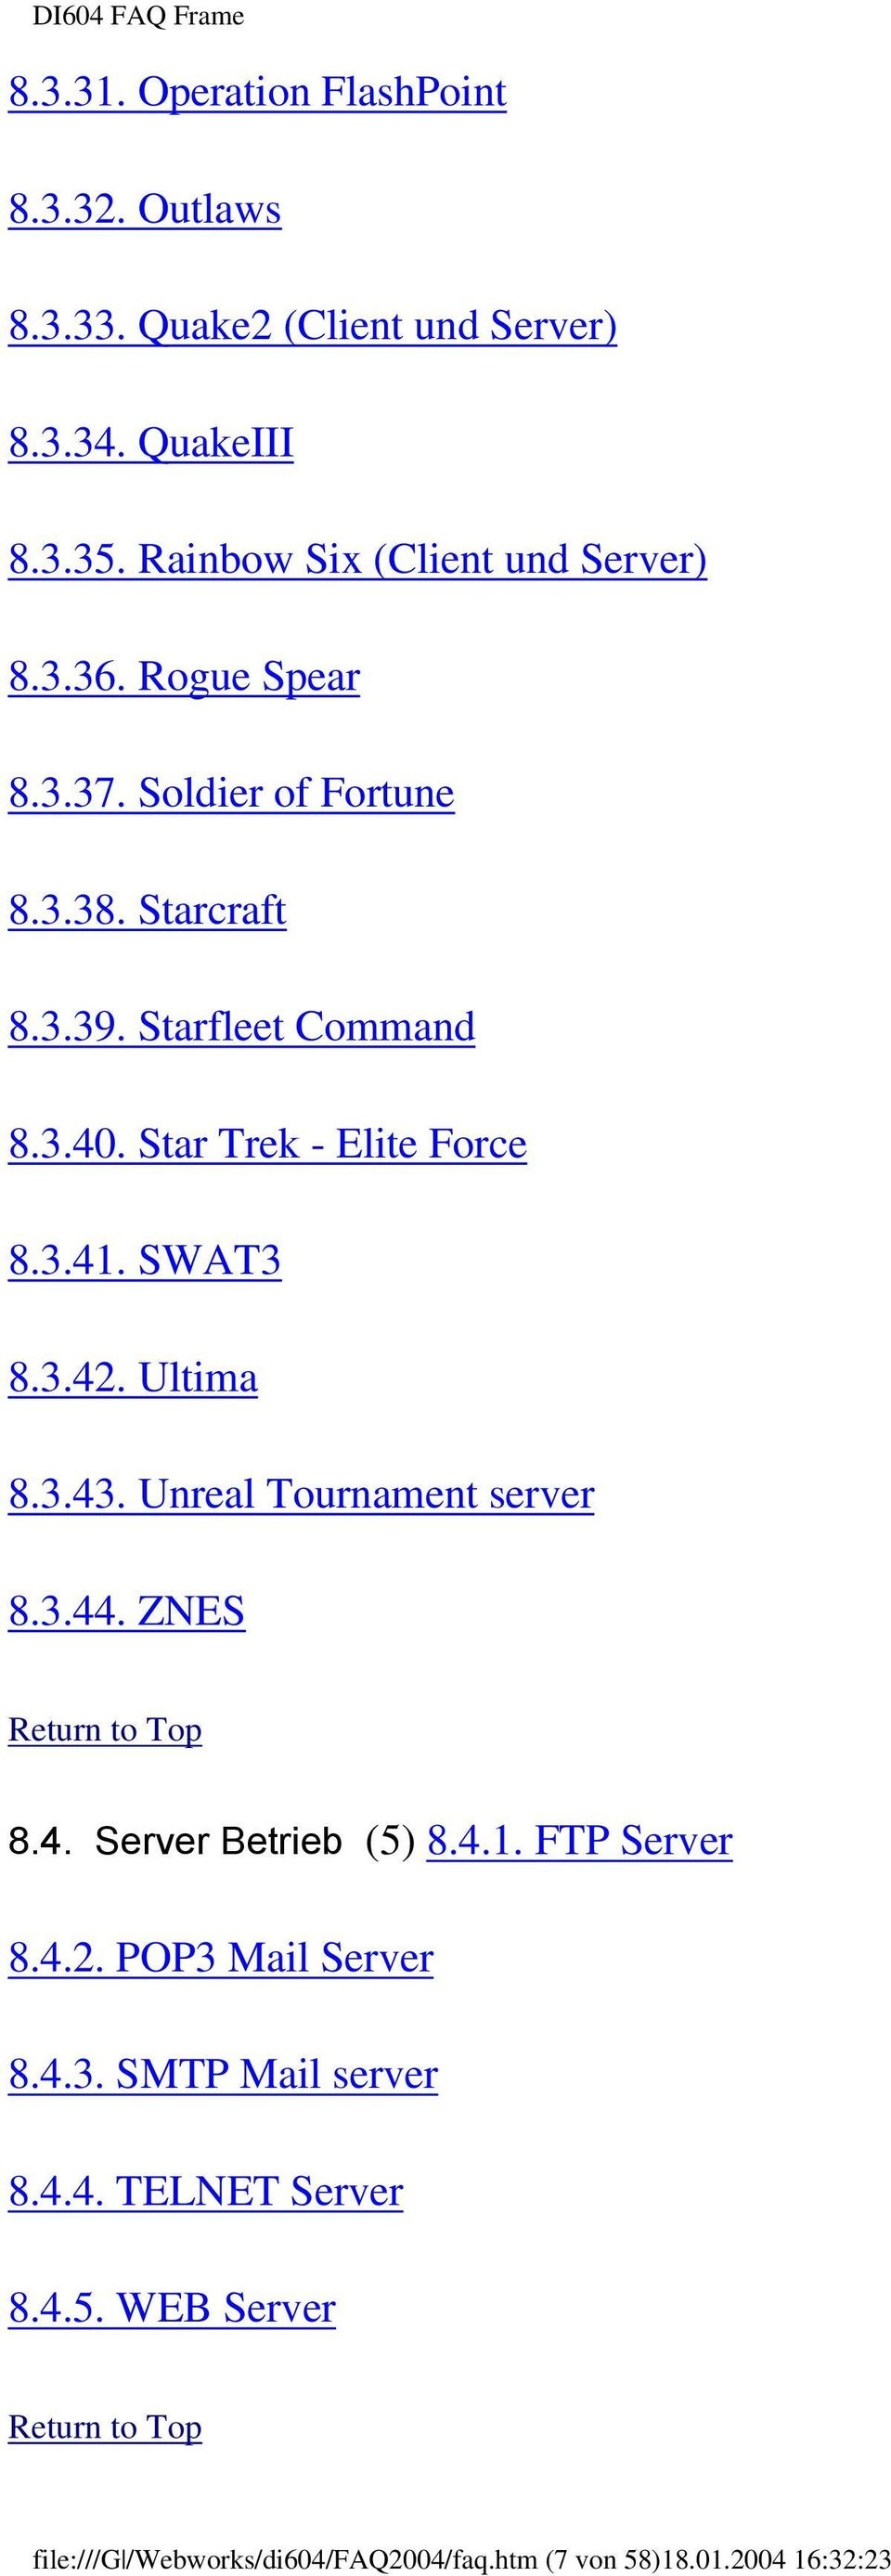 Ultima 8.3.43. Unreal Tournament server 8.3.44. ZNES Return to Top 8.4. Server Betrieb (5) 8.4.1. FTP Server 8.4.2. POP3 Mail Server 8.4.3. SMTP Mail server 8.